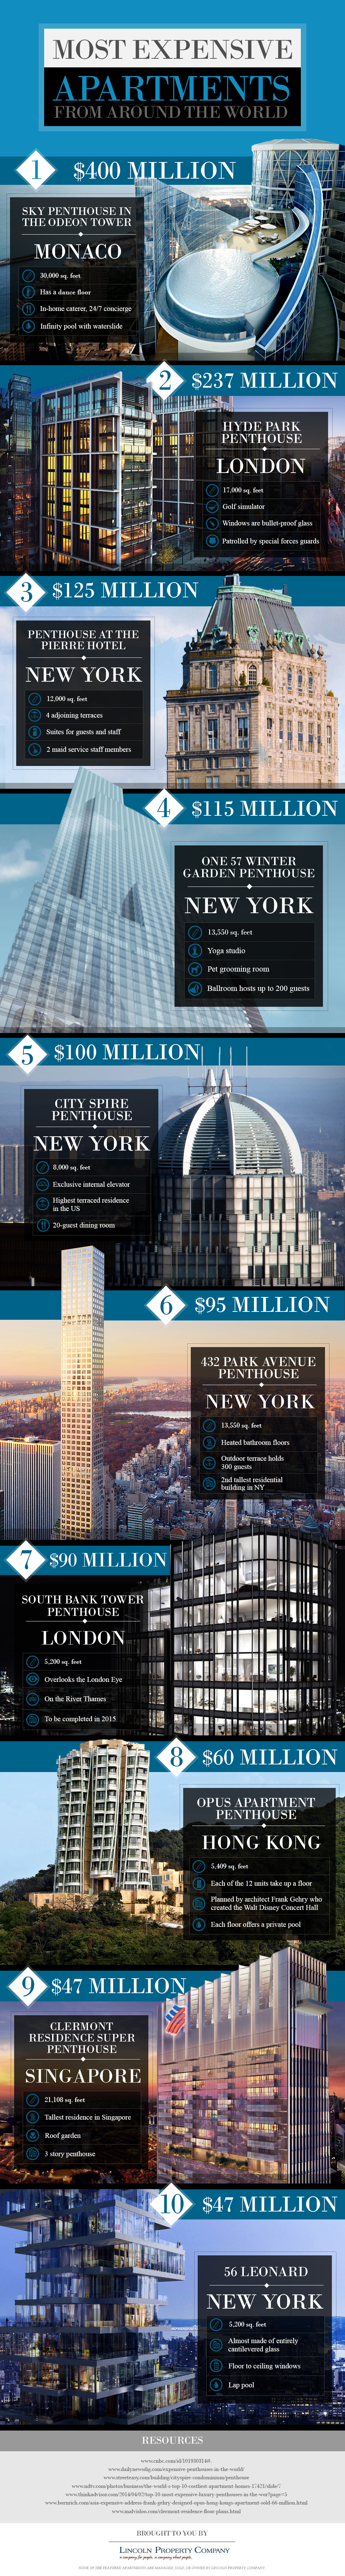 Top 10 Most Expensive Apartments Around the World